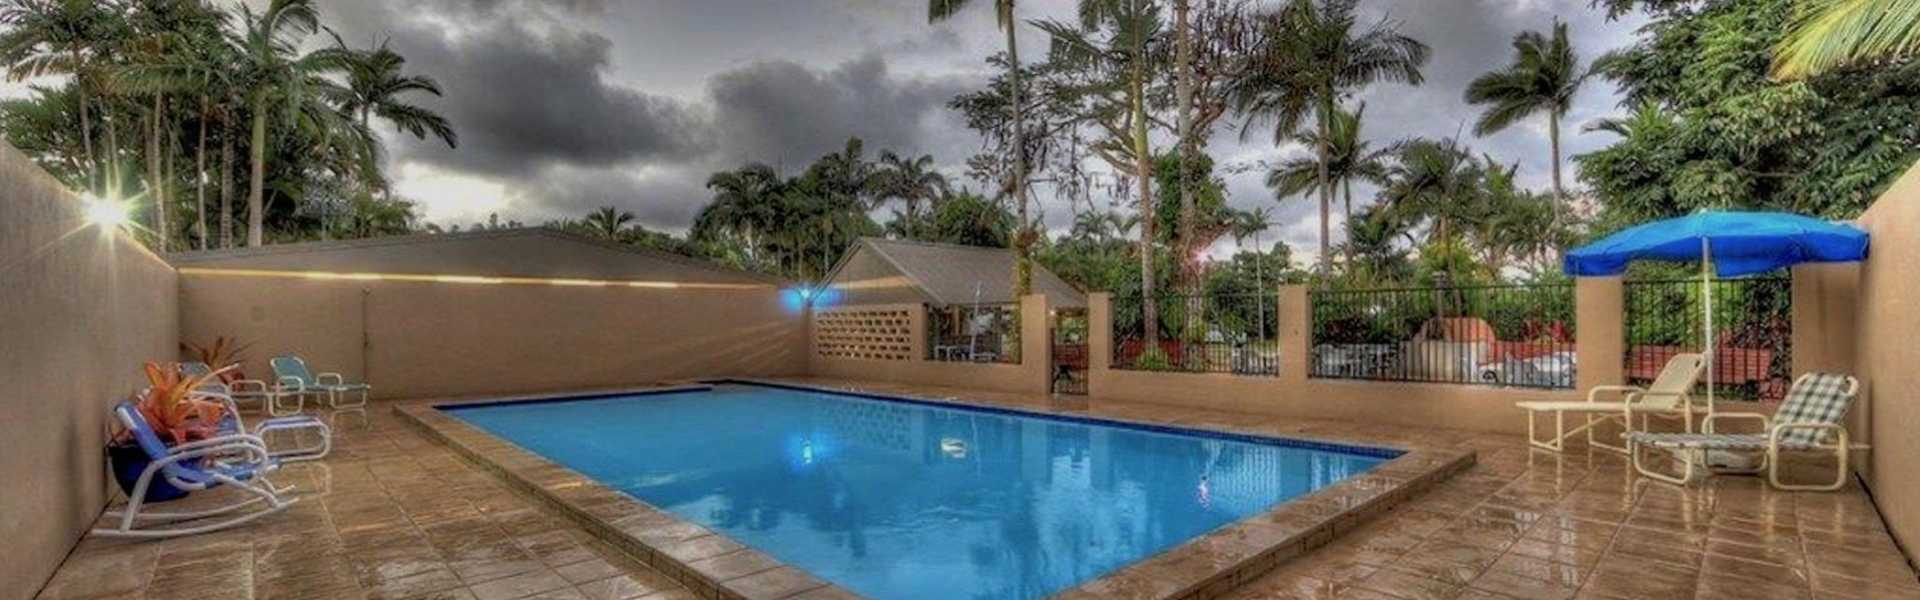 Kui Parks, Tropical Hibiscus Caravan Park, Mission Beach, Pool